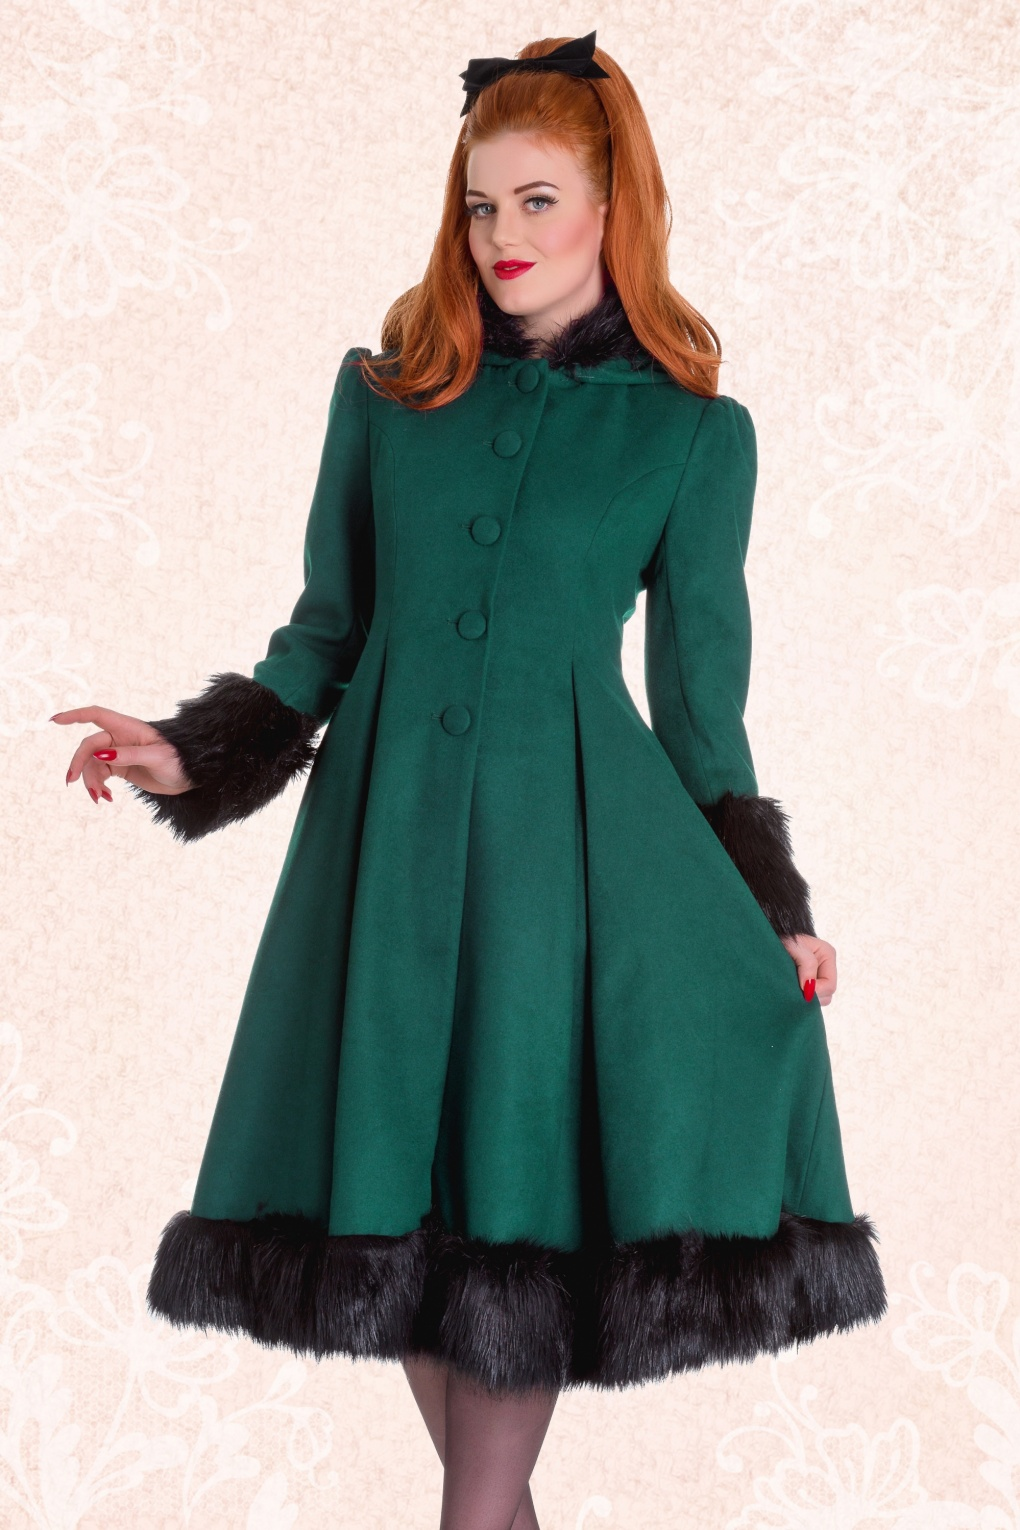 Vintage Coats & Jackets | Retro Coats and Jackets 30s Elvira Coat in Deep Green £125.67 AT vintagedancer.com